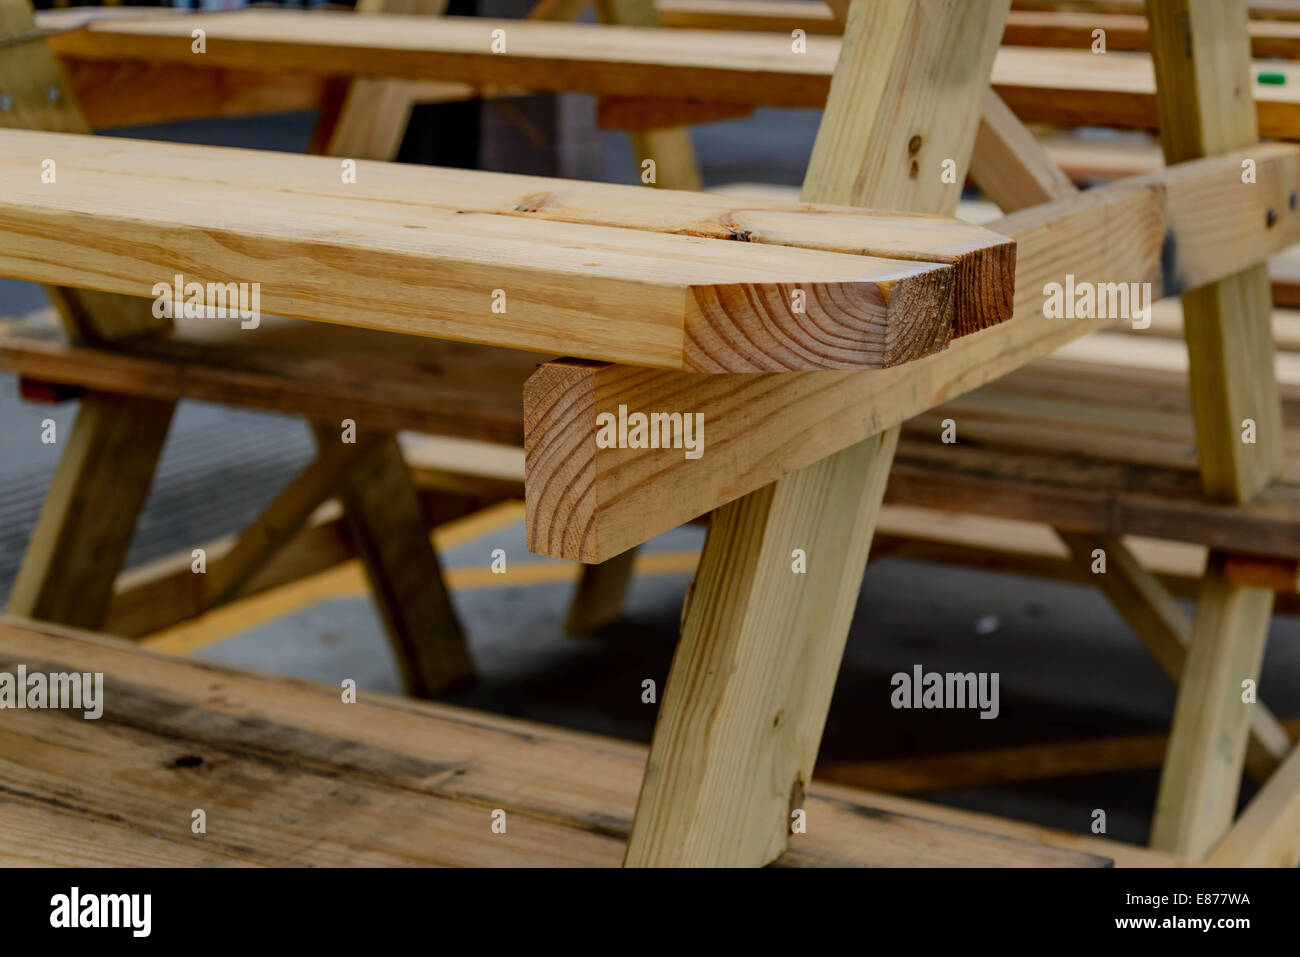 Building Supplies Stacked Wood Picnic Tables Stock Photo - Picnic table supplies